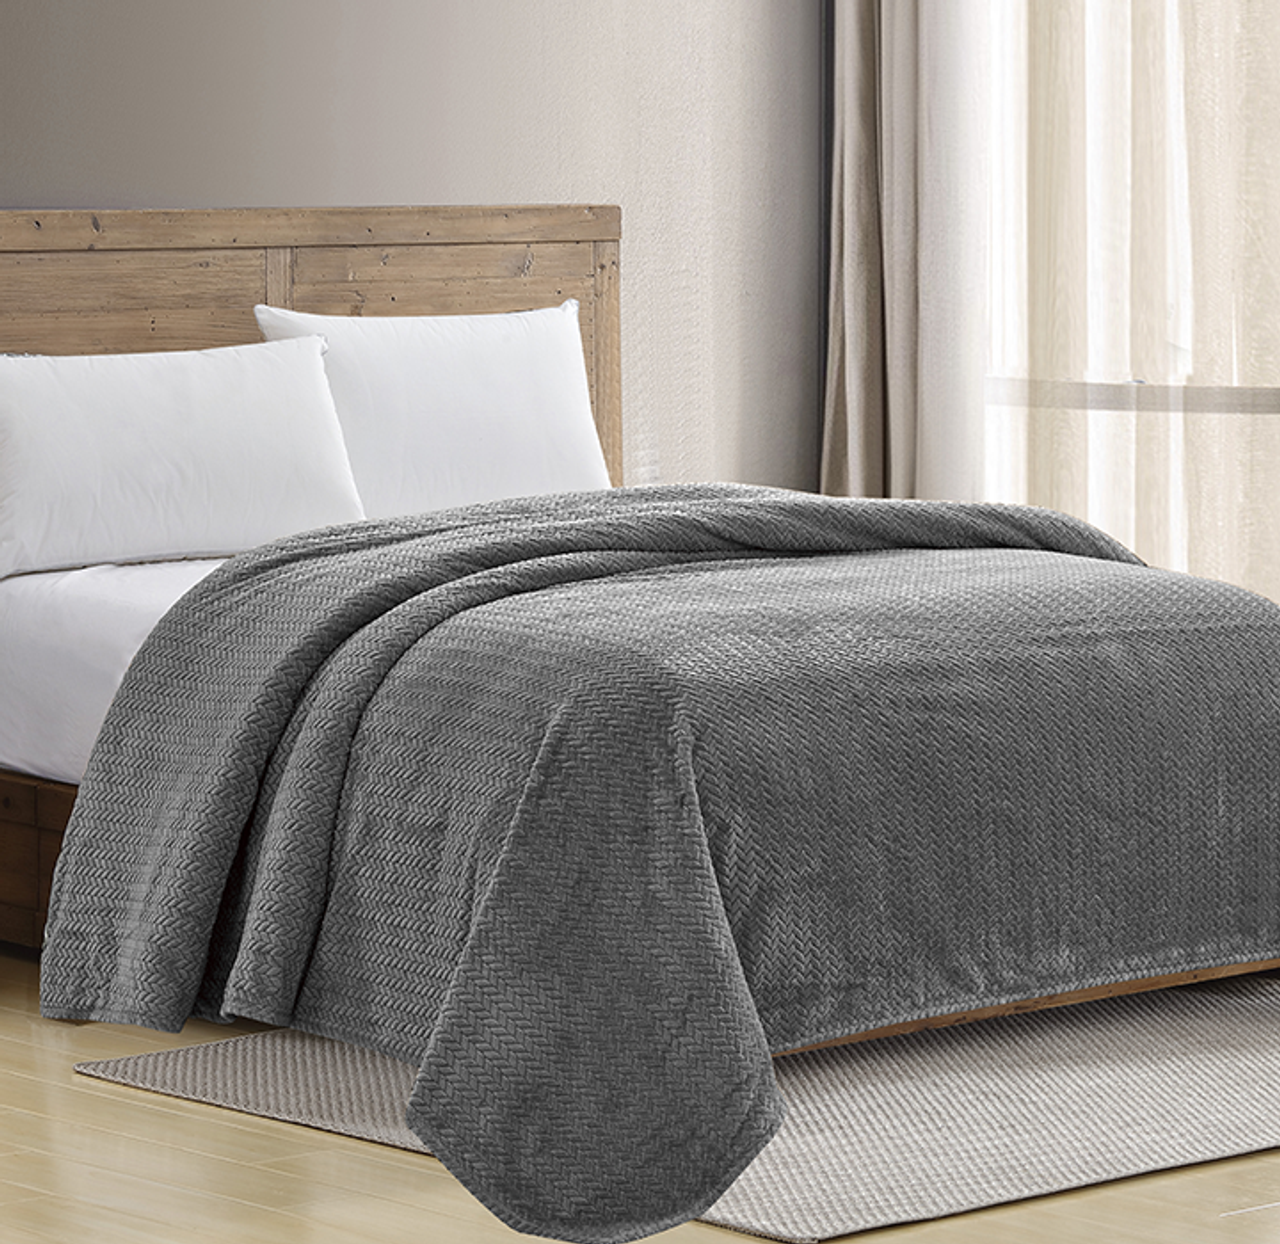 Sheradian Chevron Jacquard Braided Bed Cover Blanket $34.99 (65% OFF)